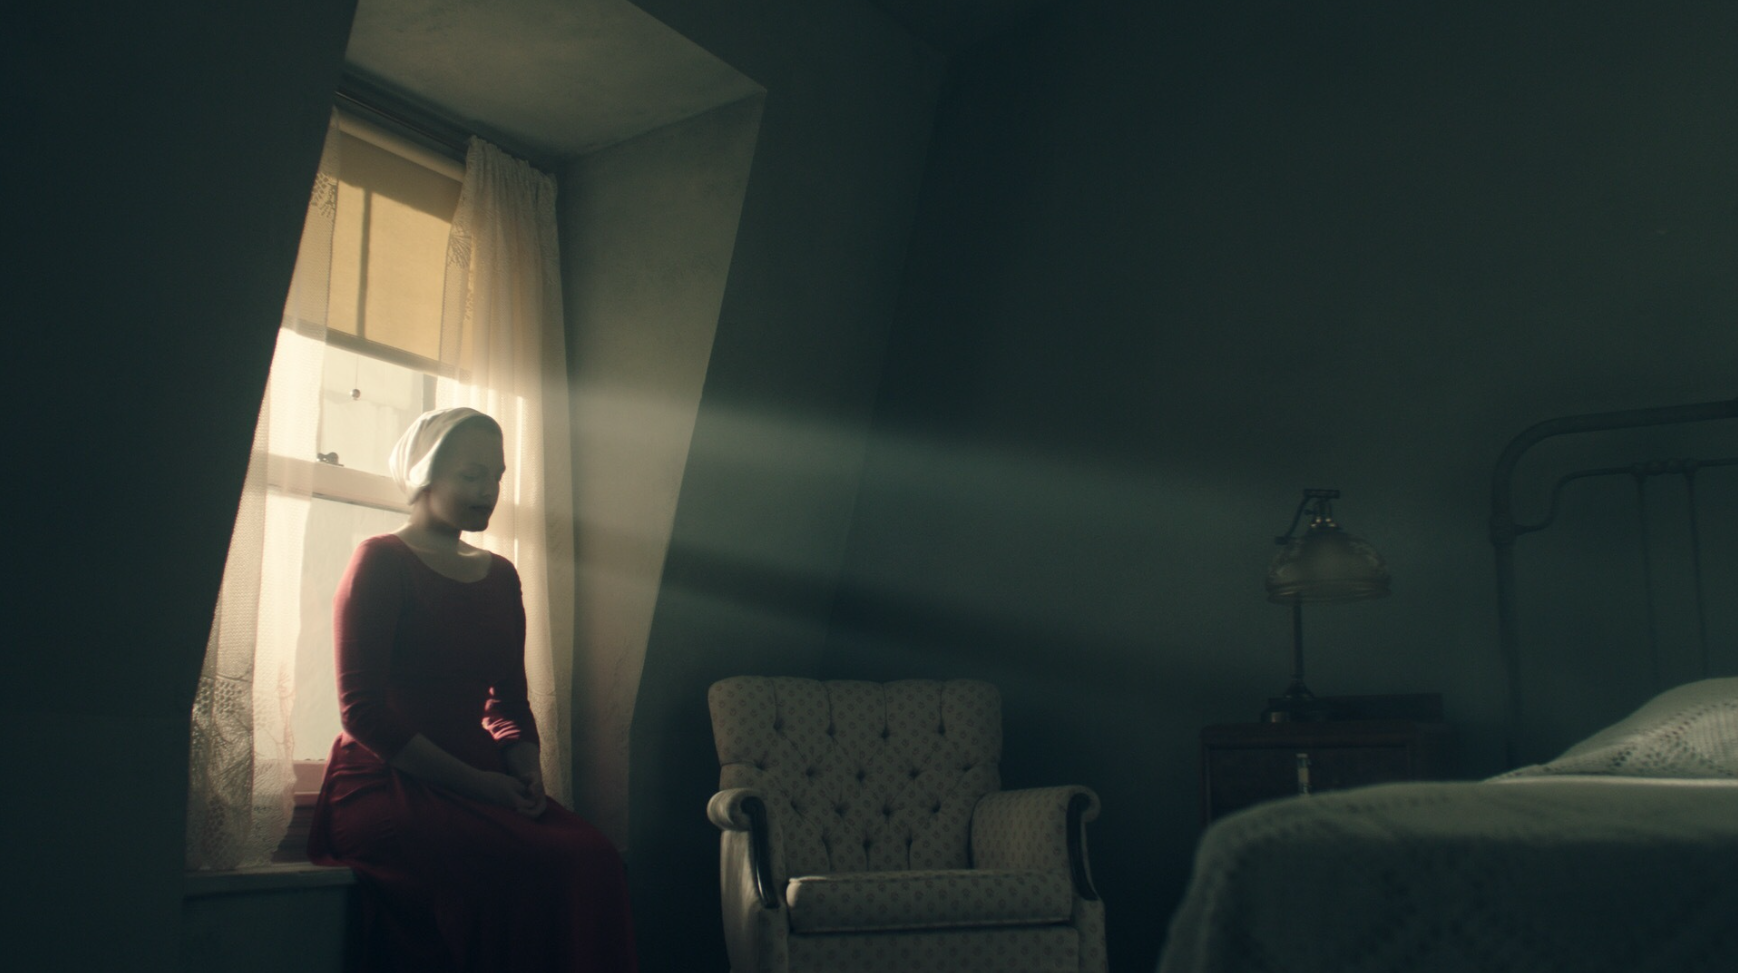 The Handmaid's Tale is another great study in the use of light and lack thereof.  One of my favorite cinematic uses of light is like this where you can see clear beams of light coming through a window or slat.